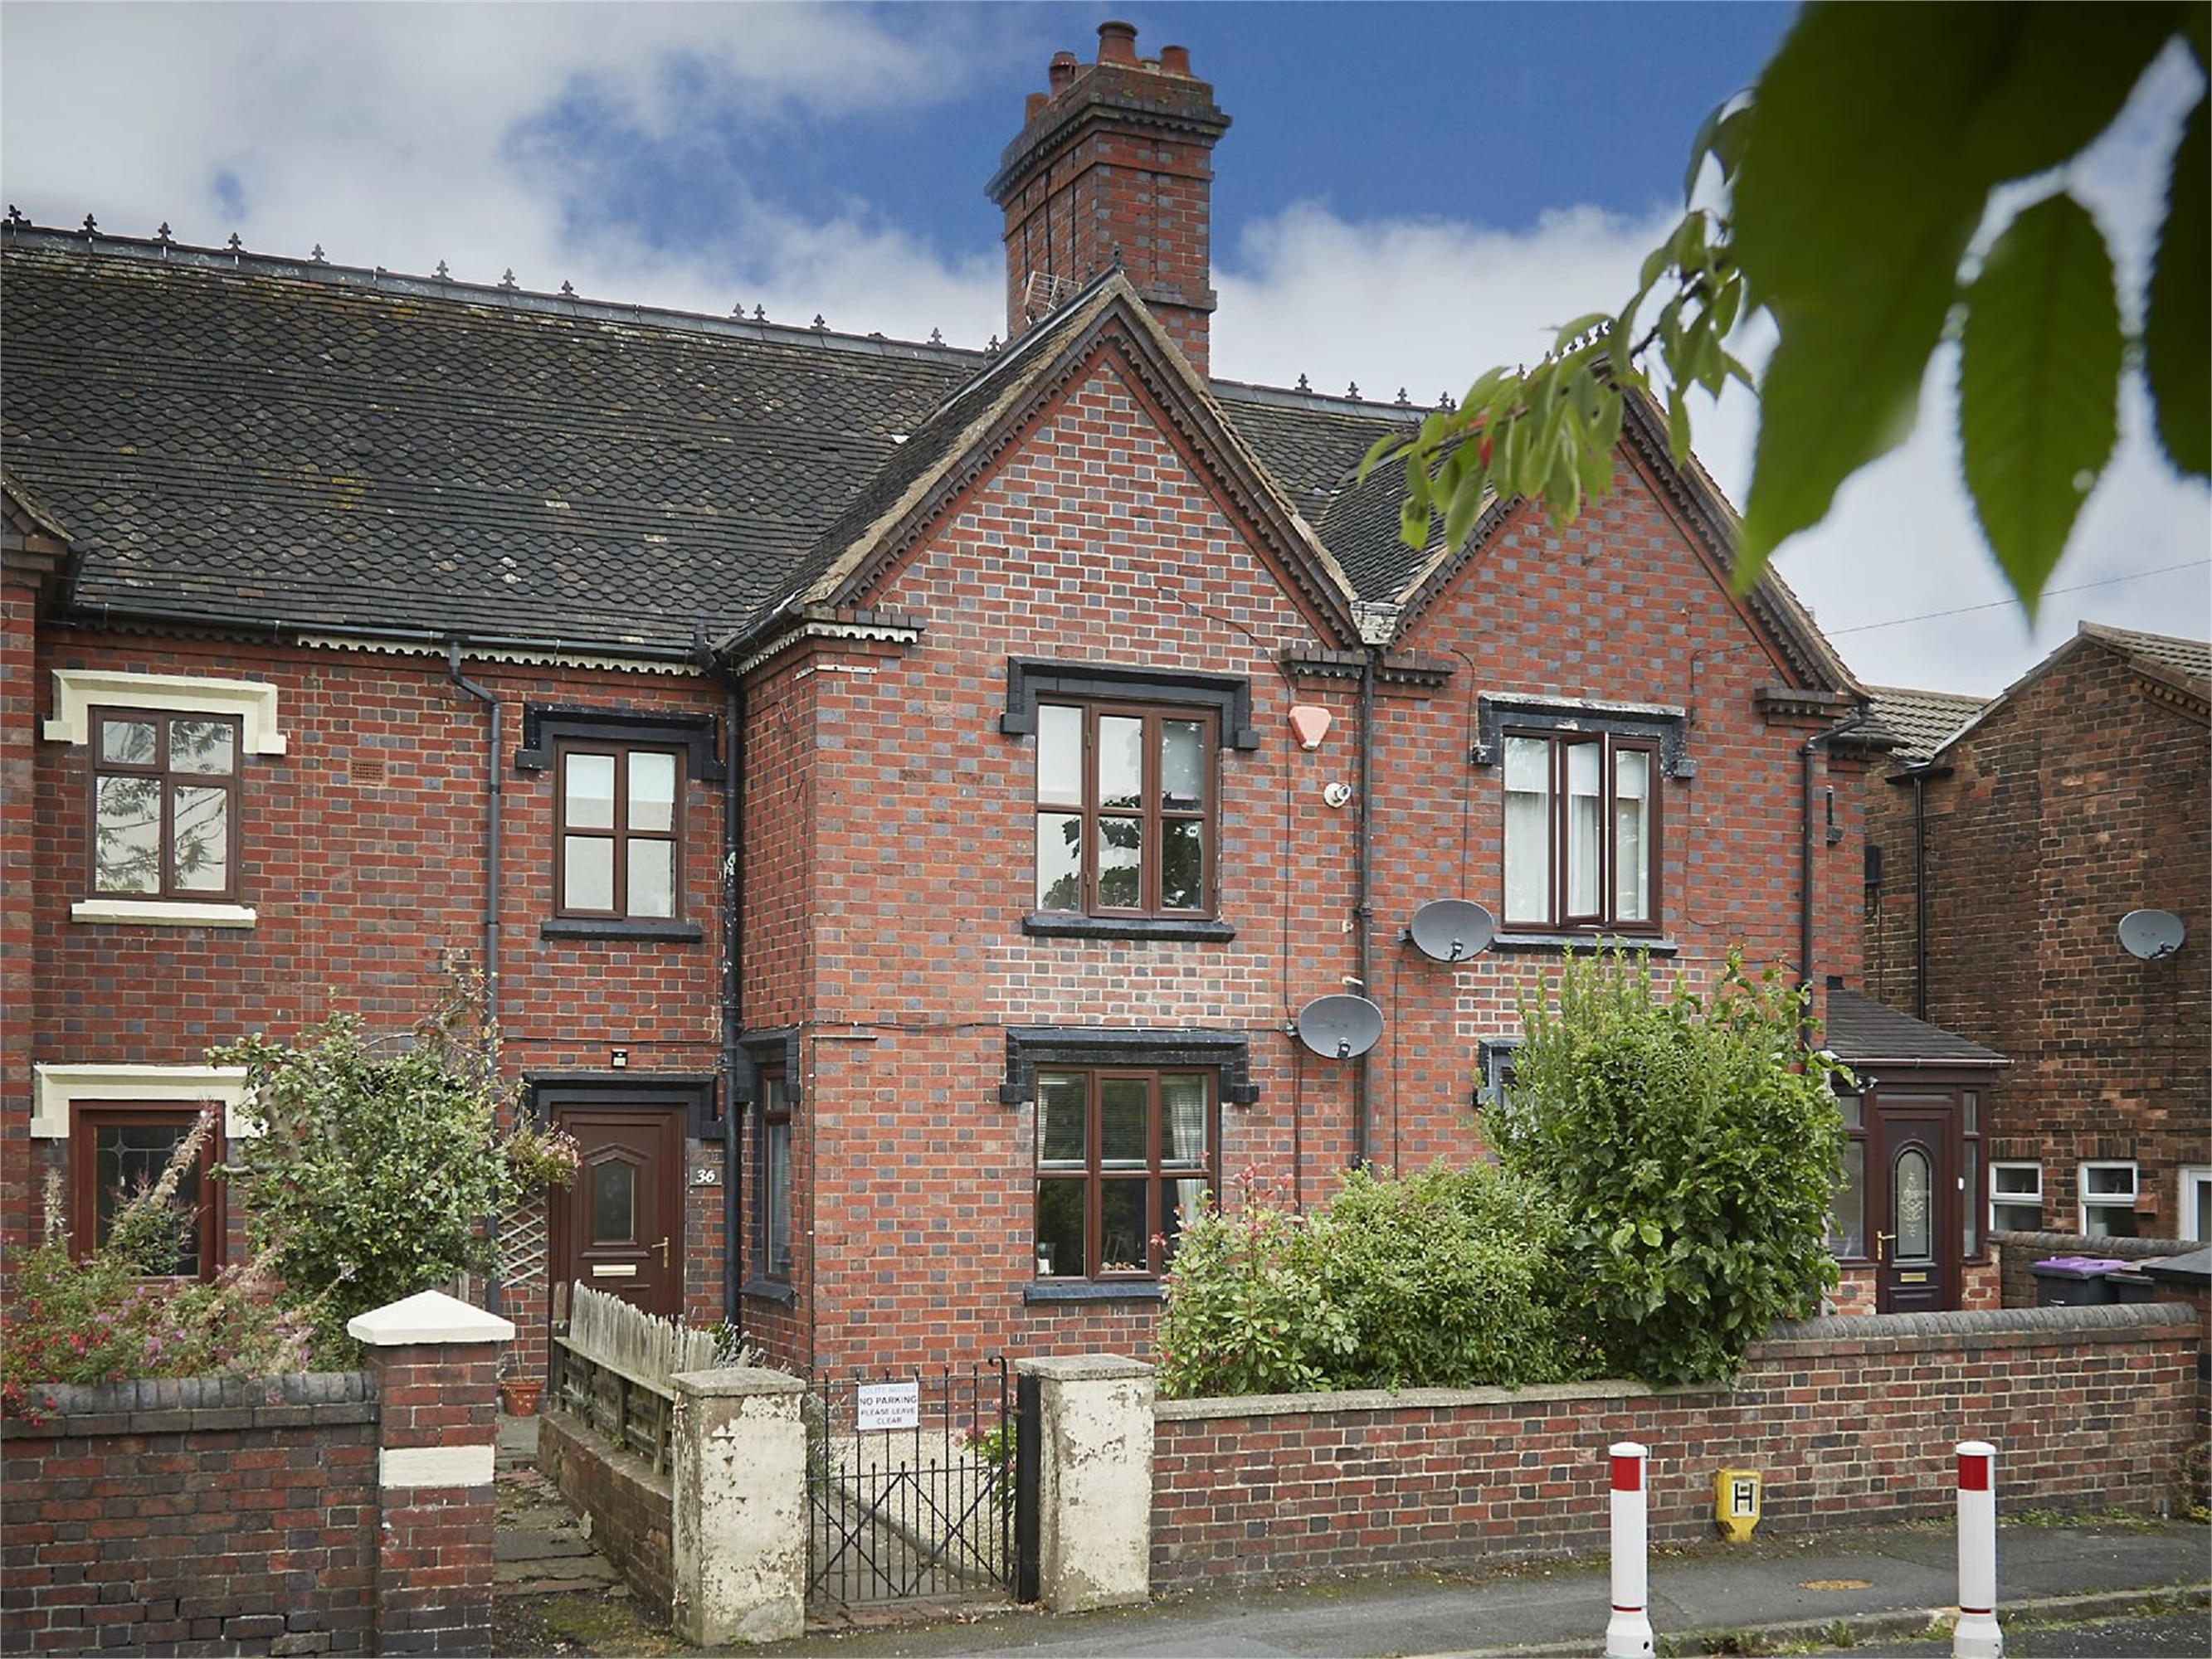 3 Bedrooms Terraced House for sale in 36 Stafford Street, St Georges, Telford, Shropshire, TF2